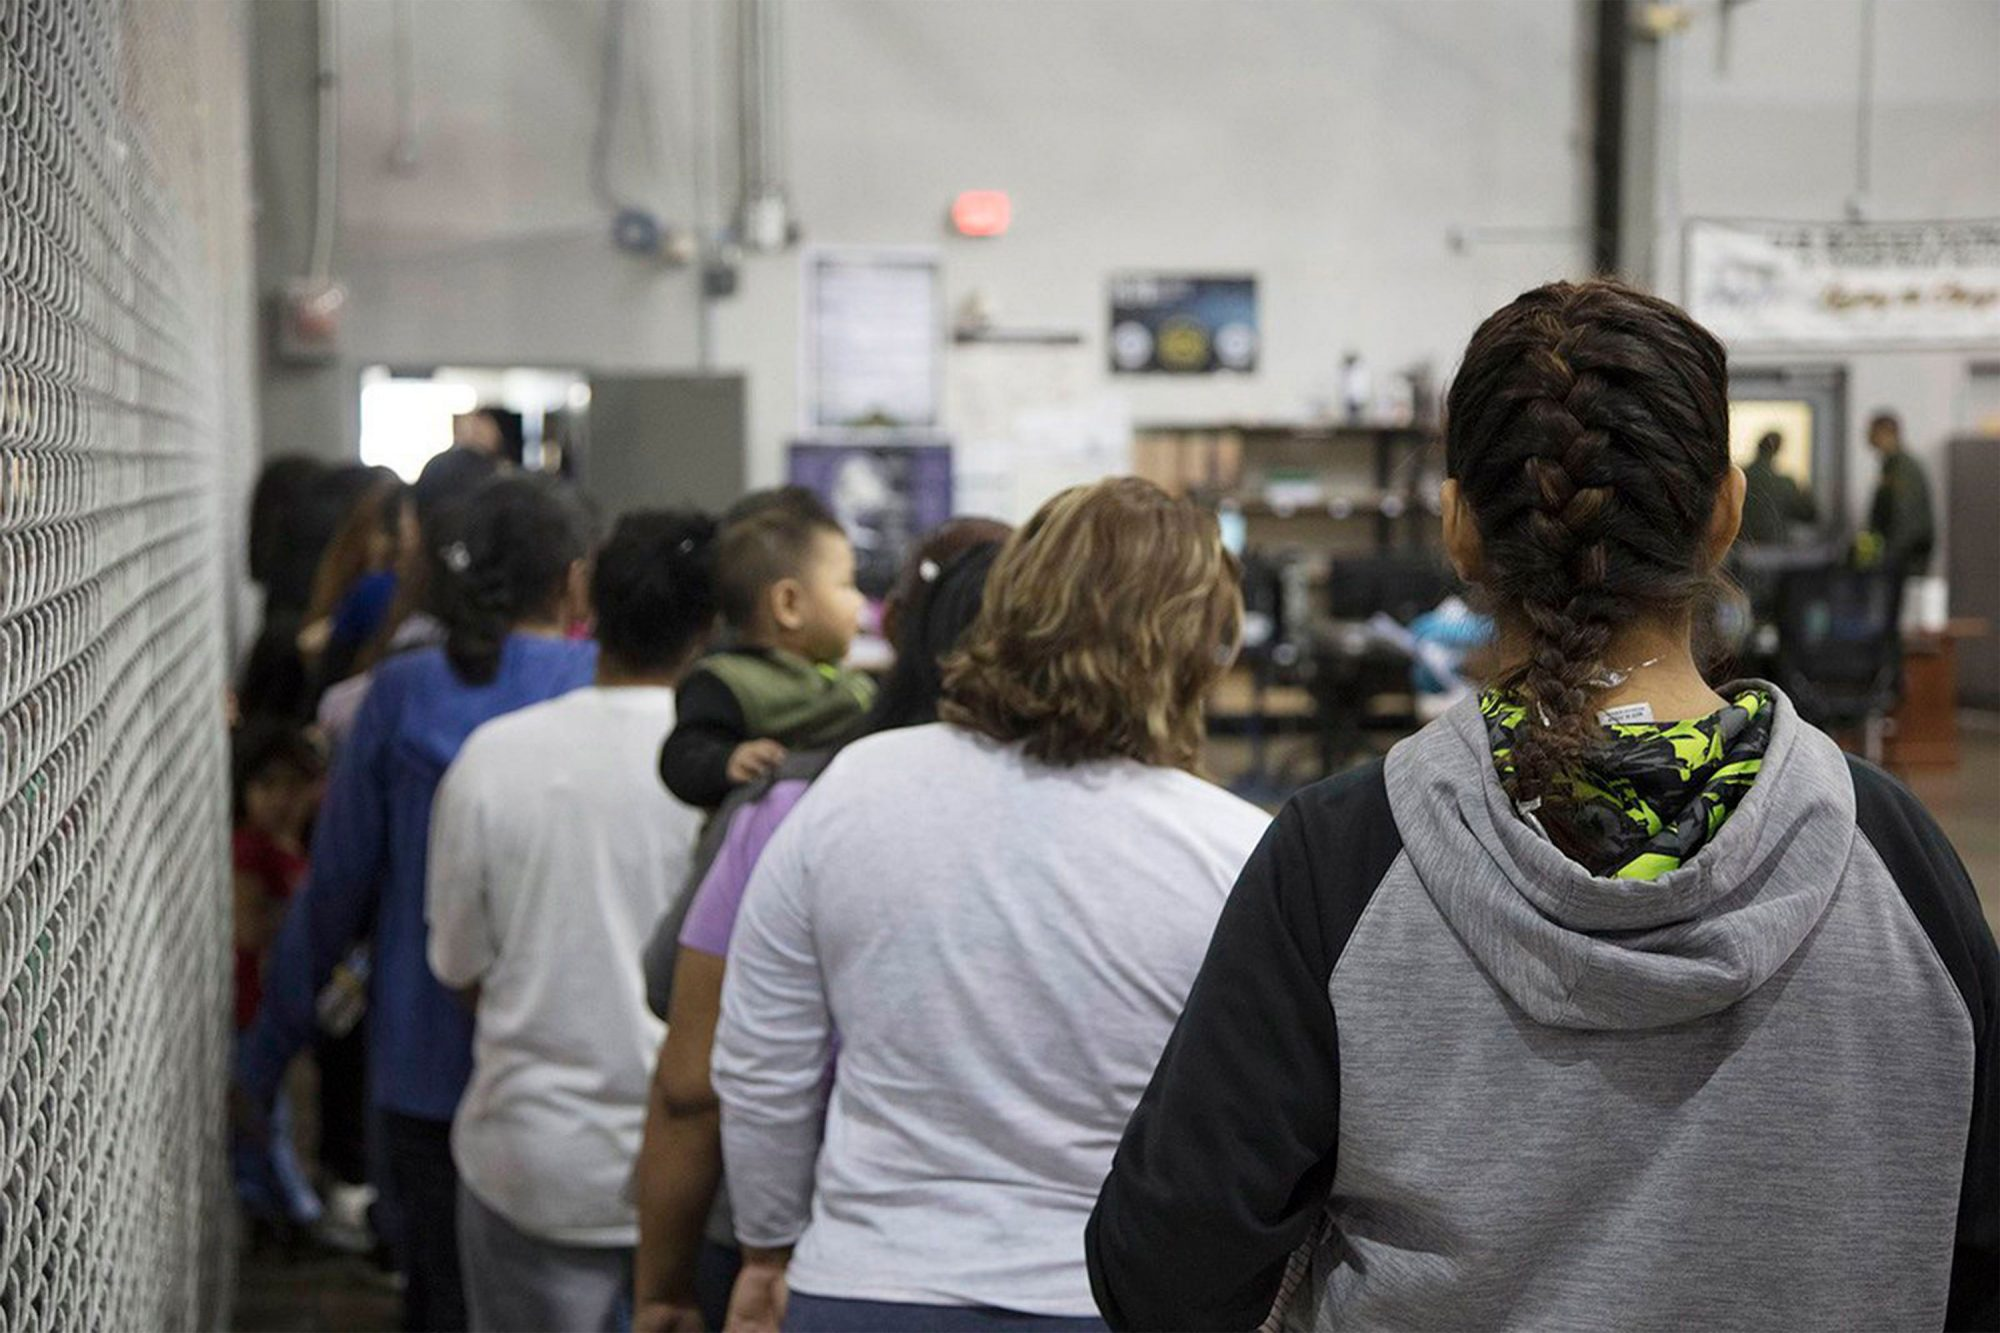 McAllen processing center for people crossing the US border., USA - 18 Jun 2018